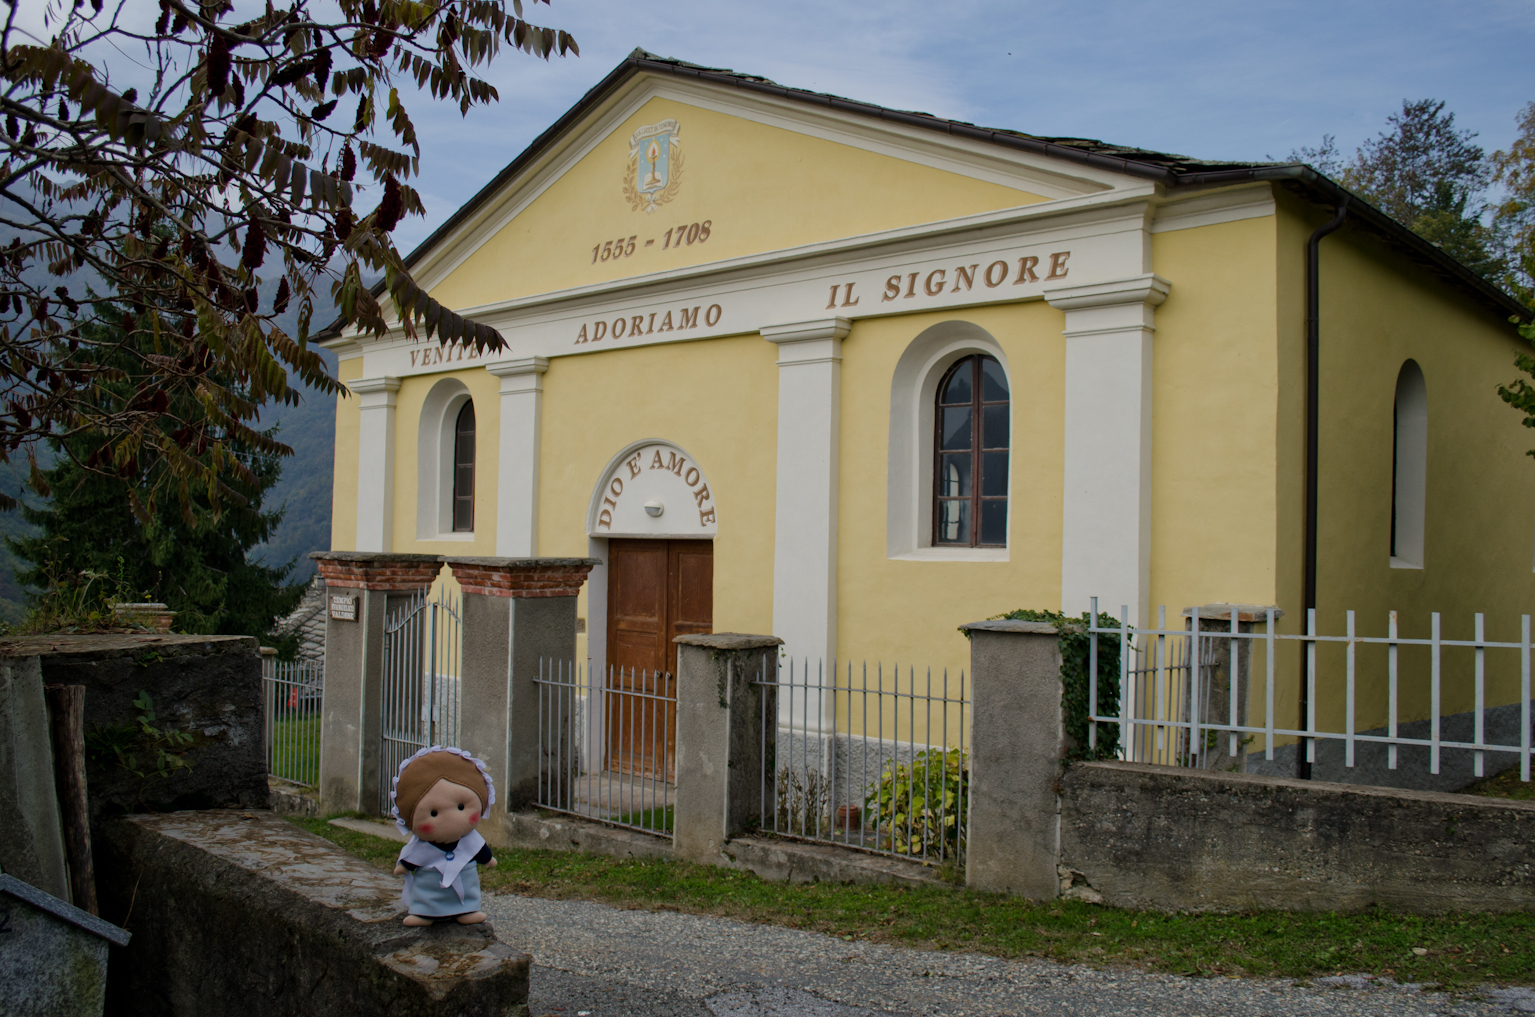 Here I am in San Lorenzo, the administrative centre of Angrogna!